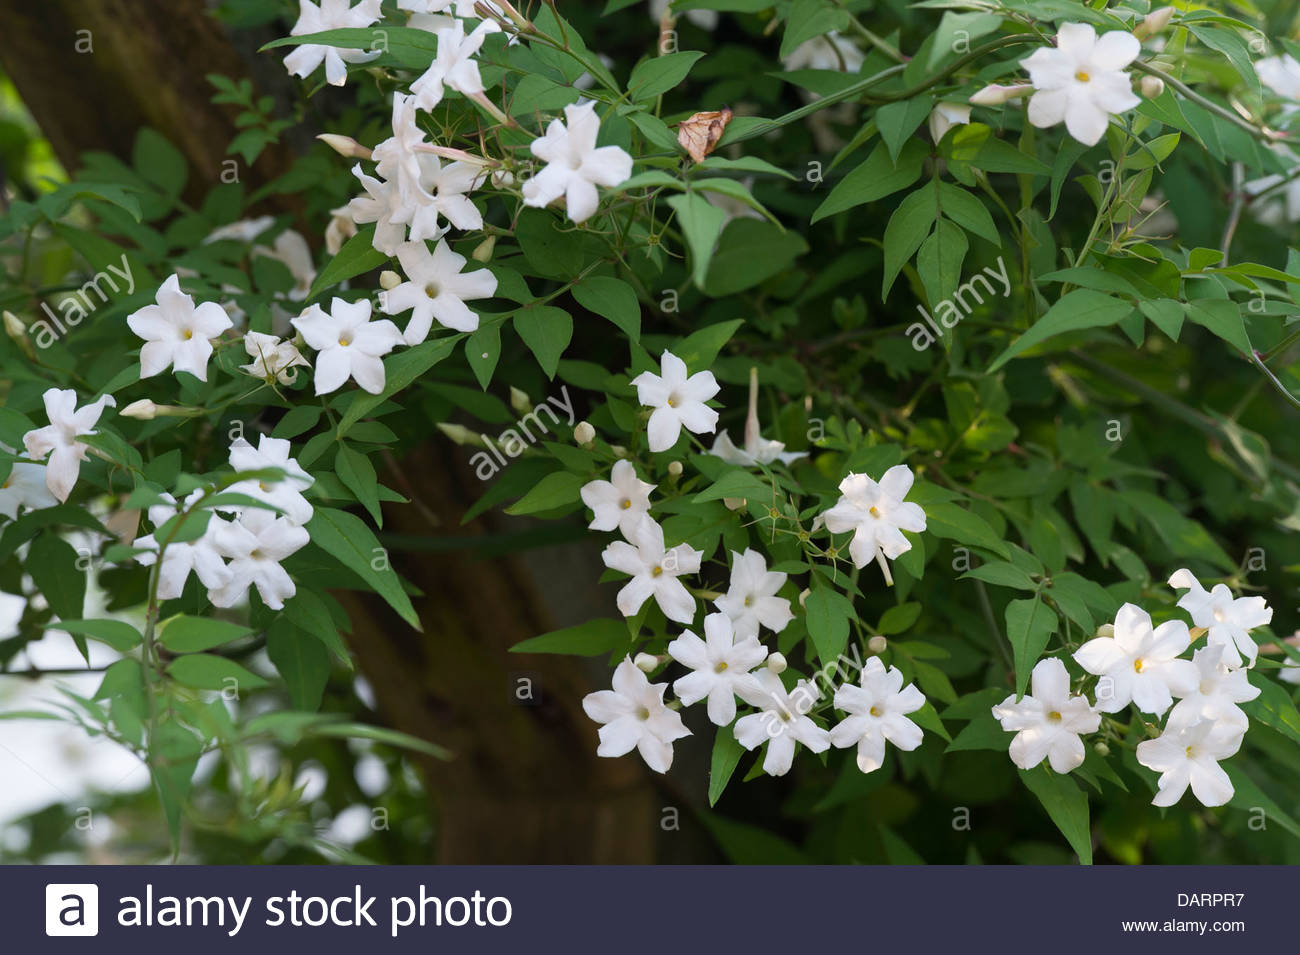 Jasminum officinale clotted cream jasmine flowers stock photo jasminum officinale clotted cream jasmine flowers izmirmasajfo